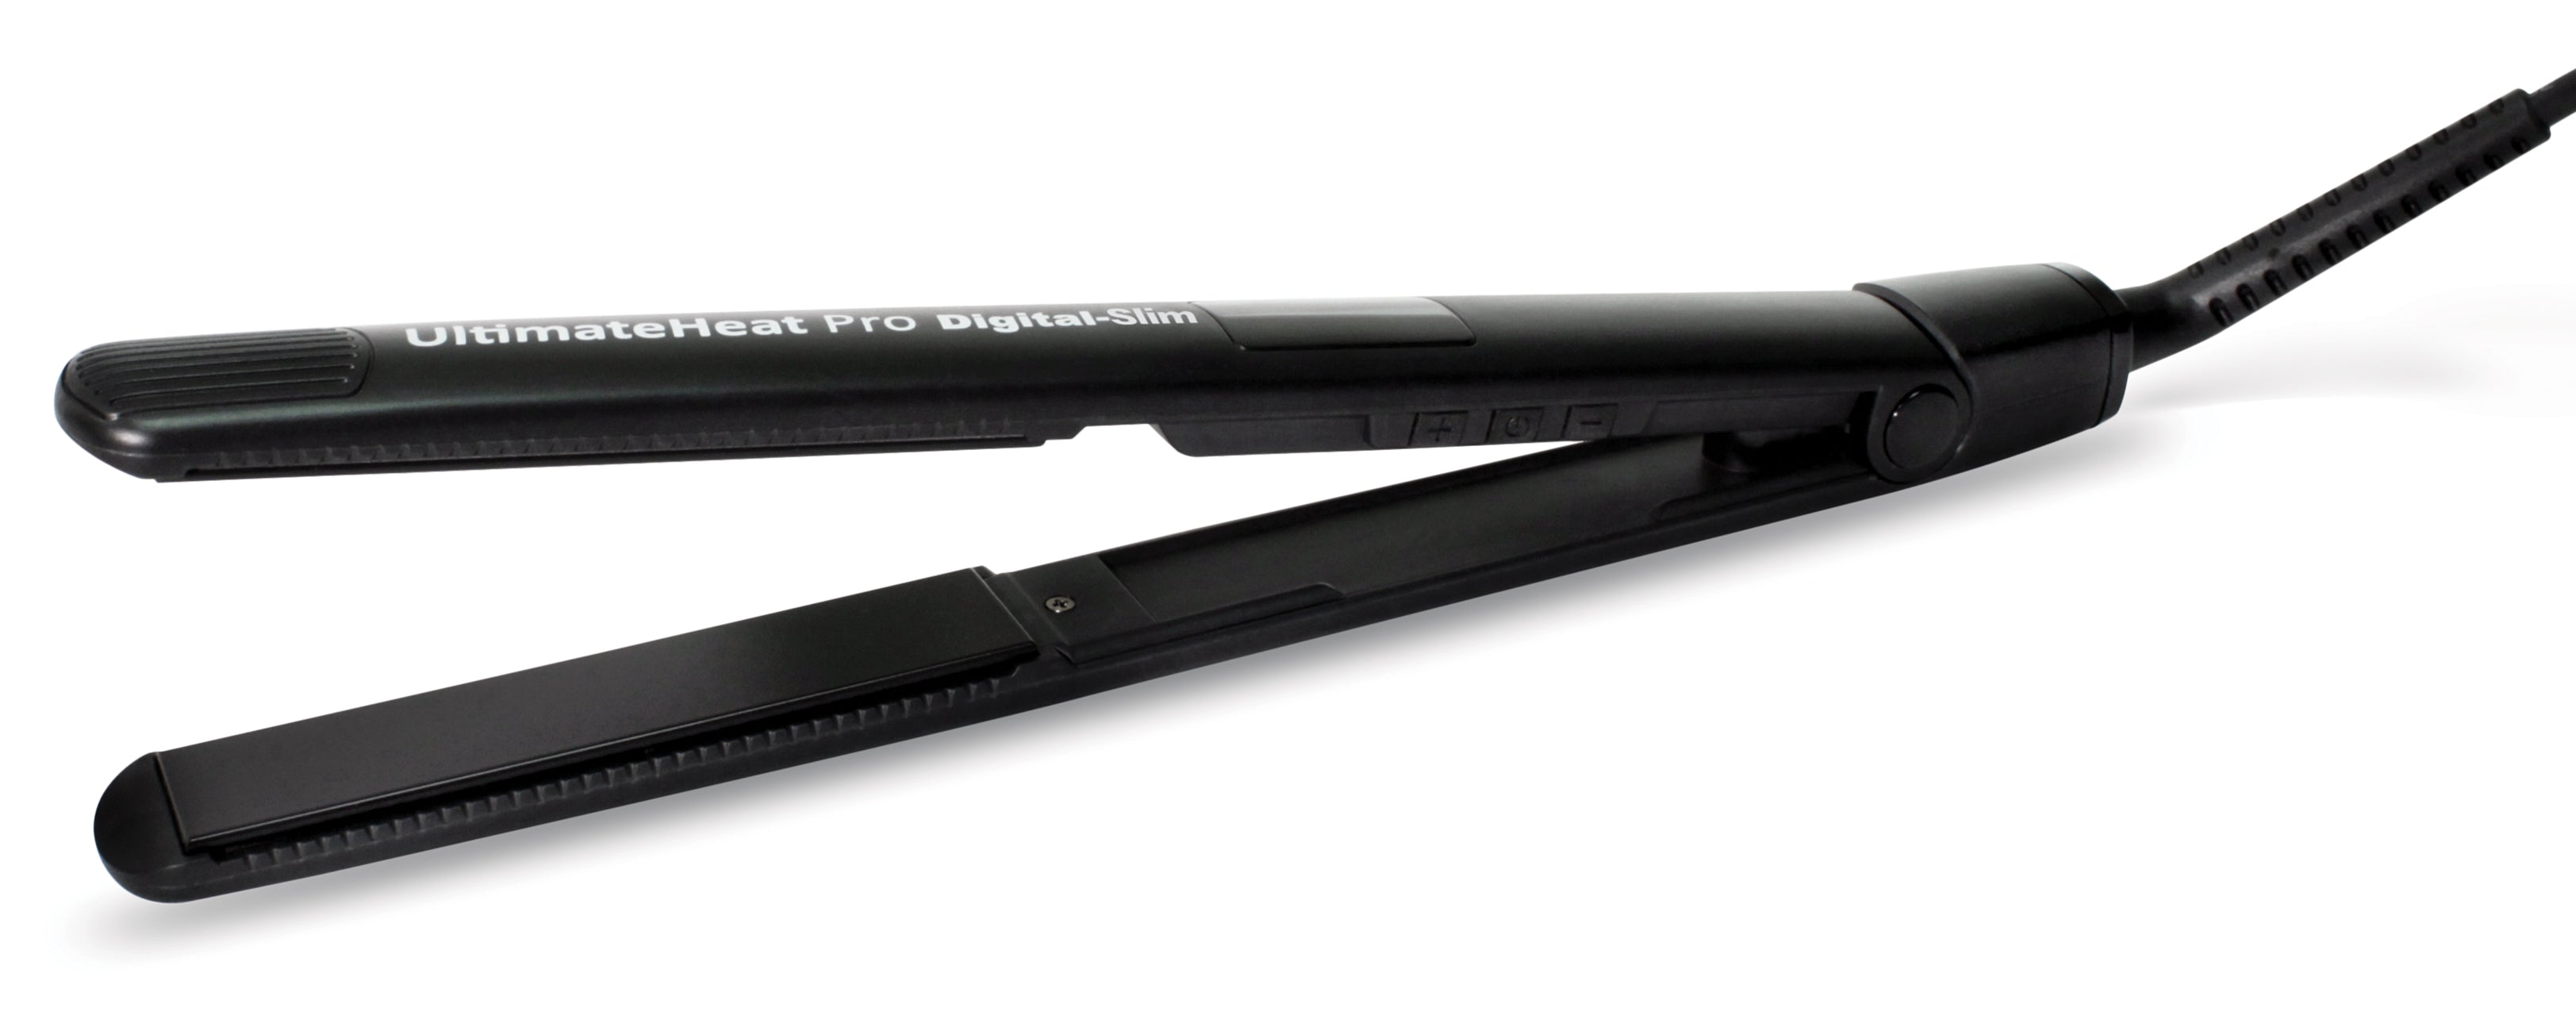 Digital-Slim Pro (Graphite) by ULTIMATE HEAT